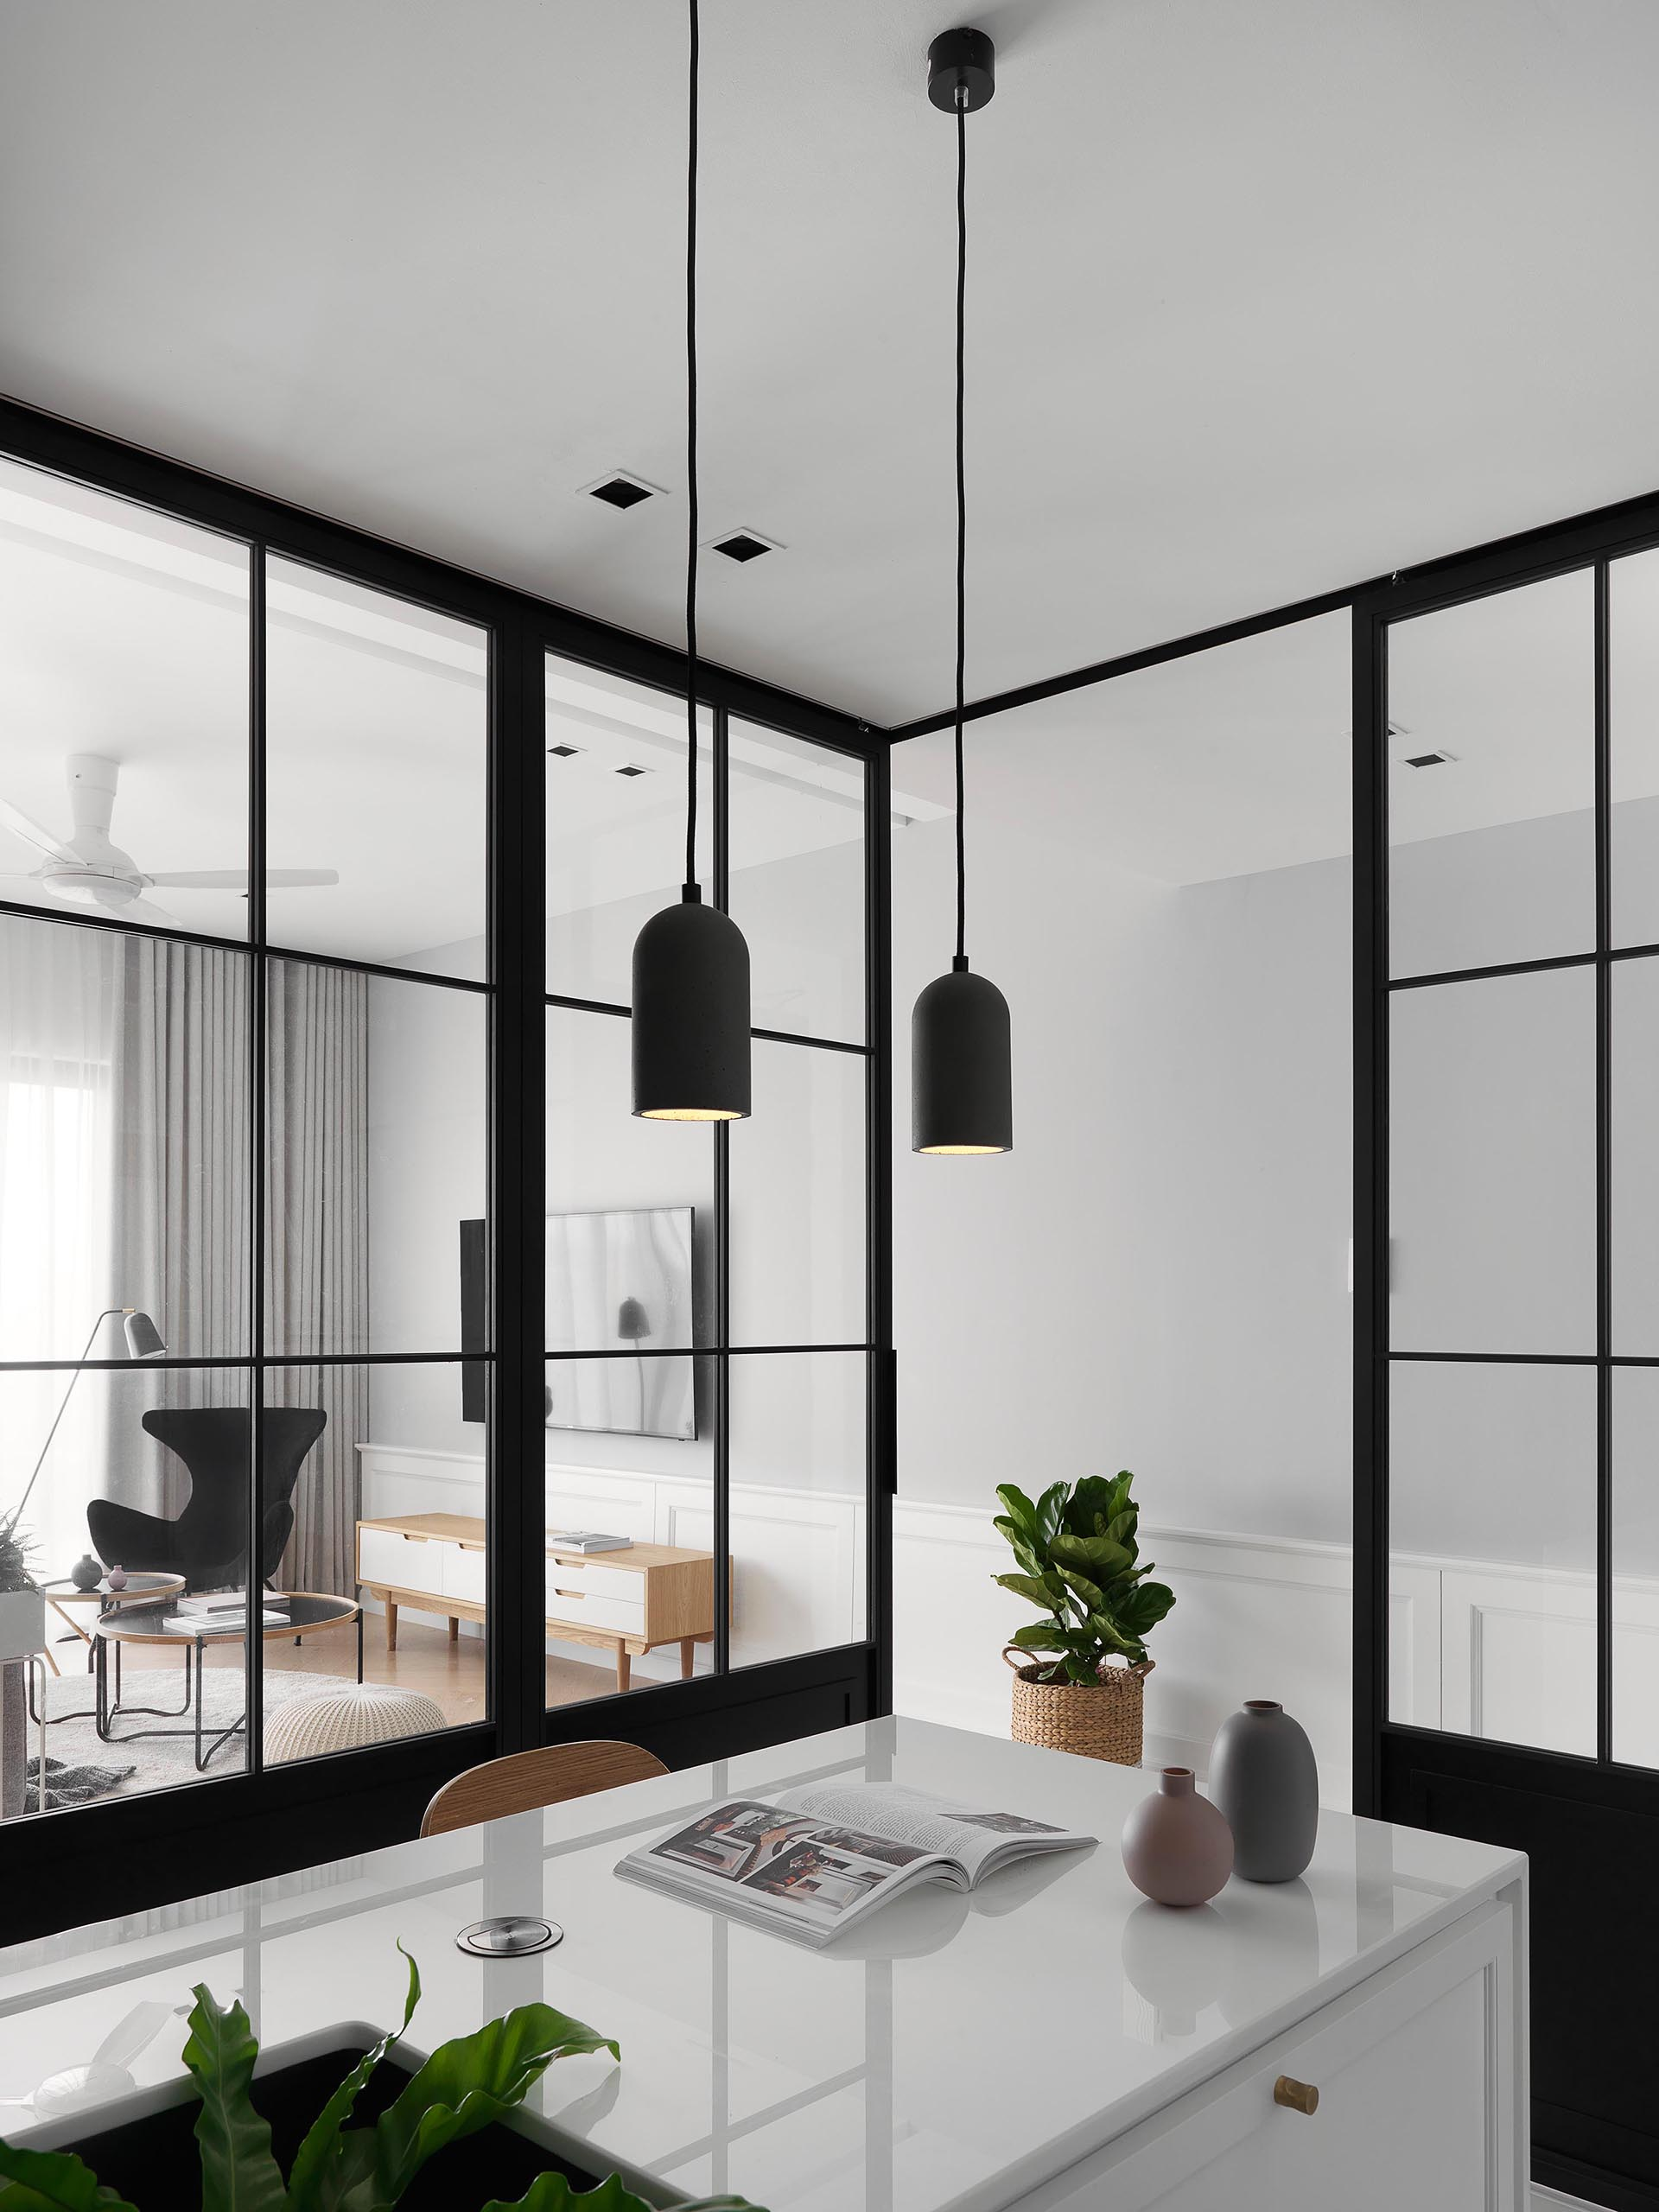 Sliding black-framed glass doors separate this modern kitchen from the living room and dining room.